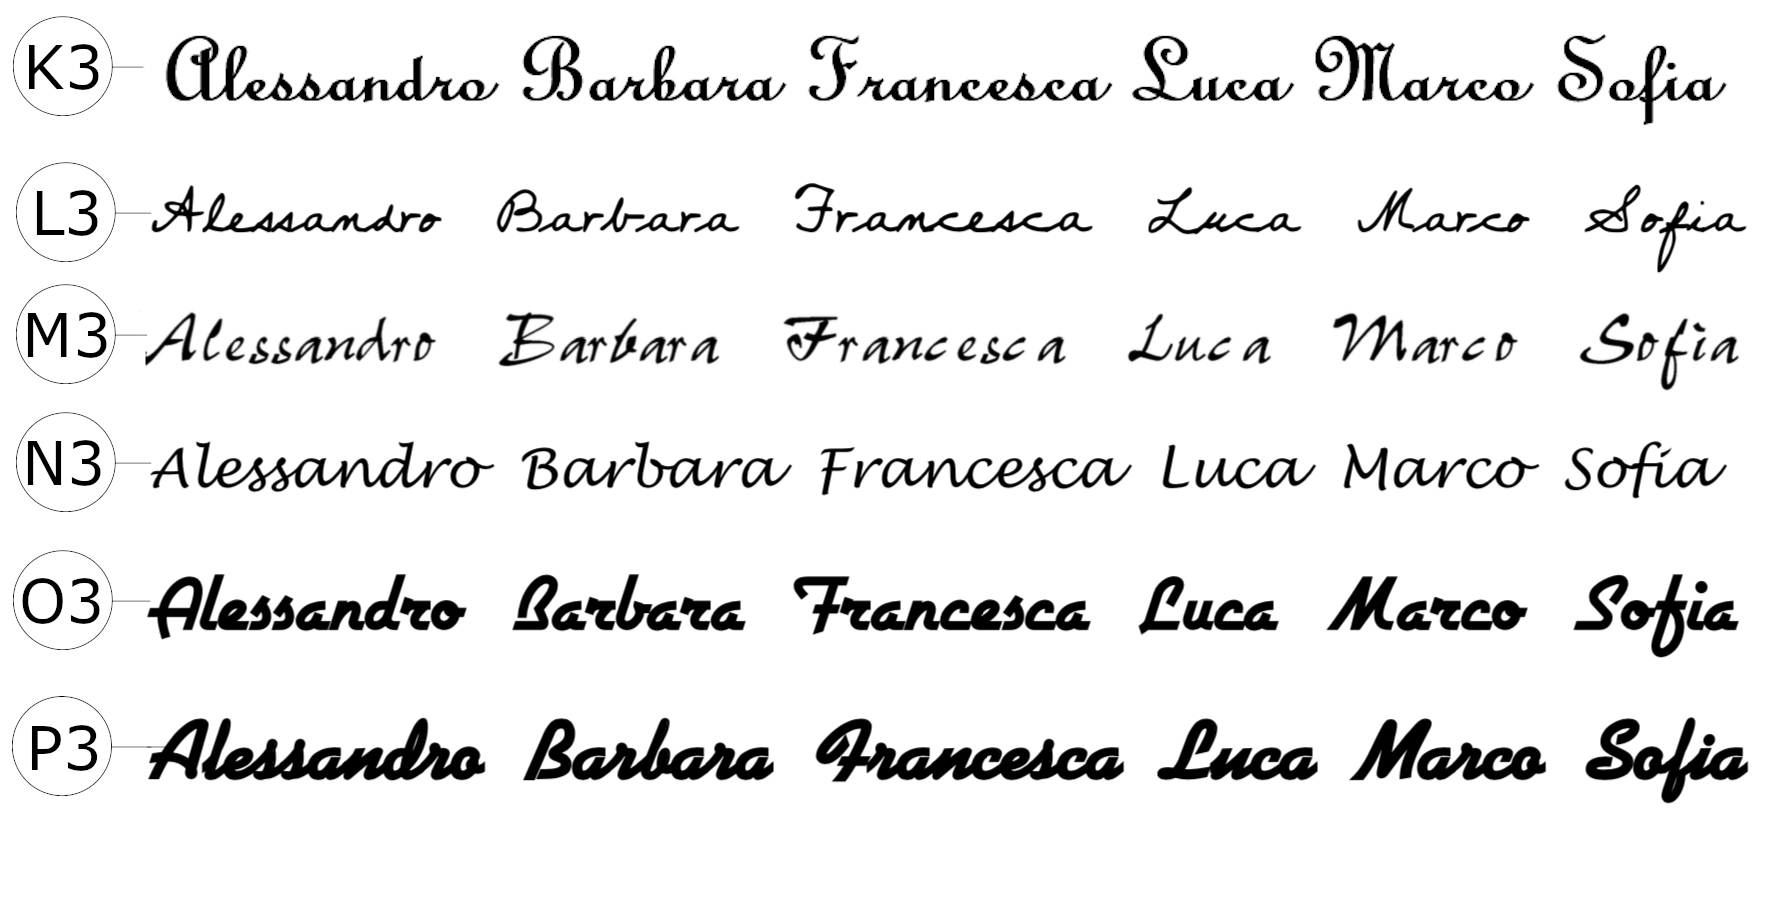 elenco font incisioni pagina 6